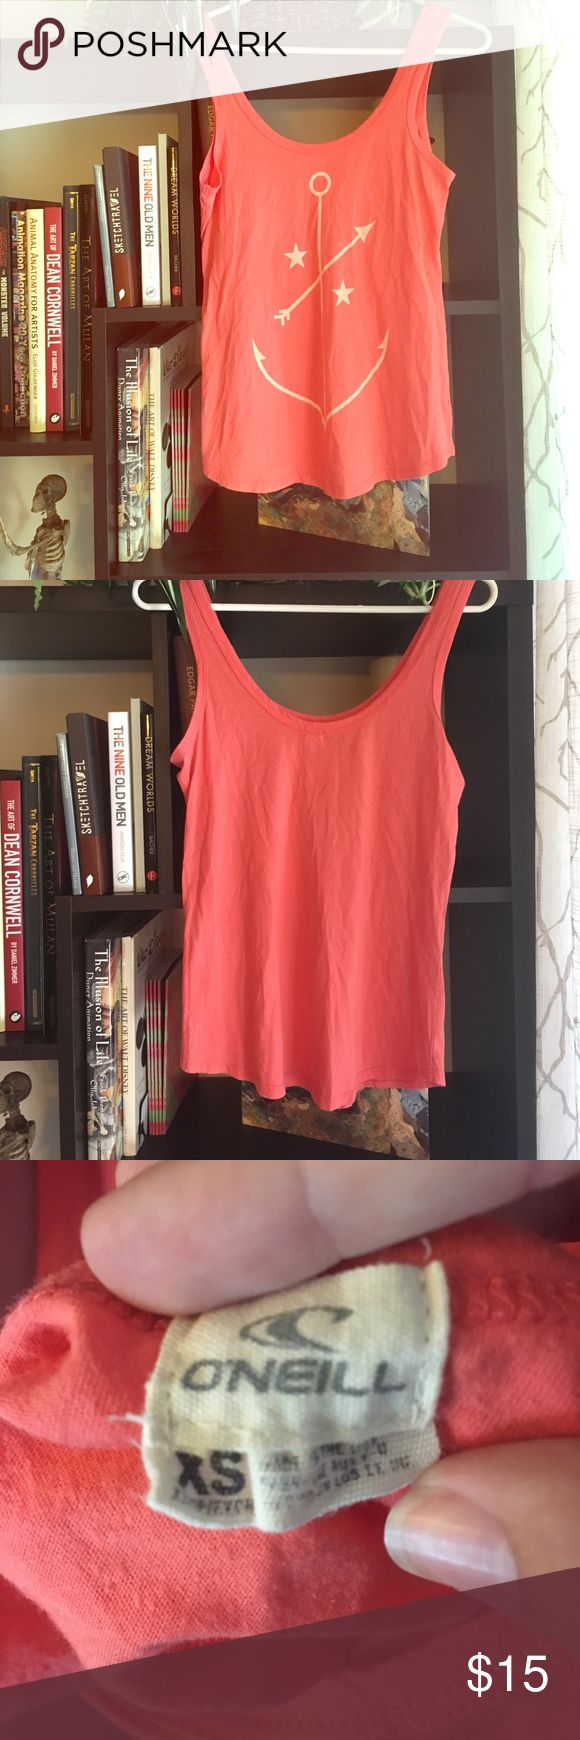 O'Neill orange anchor tank top Super comfy and cute tank top for simple hot days! Nice and soft yet cool, no damage at all. Orange color is not too bright, just right shade between coral and orange. Fits true to size (XS) O'Neill Tops Tank Tops